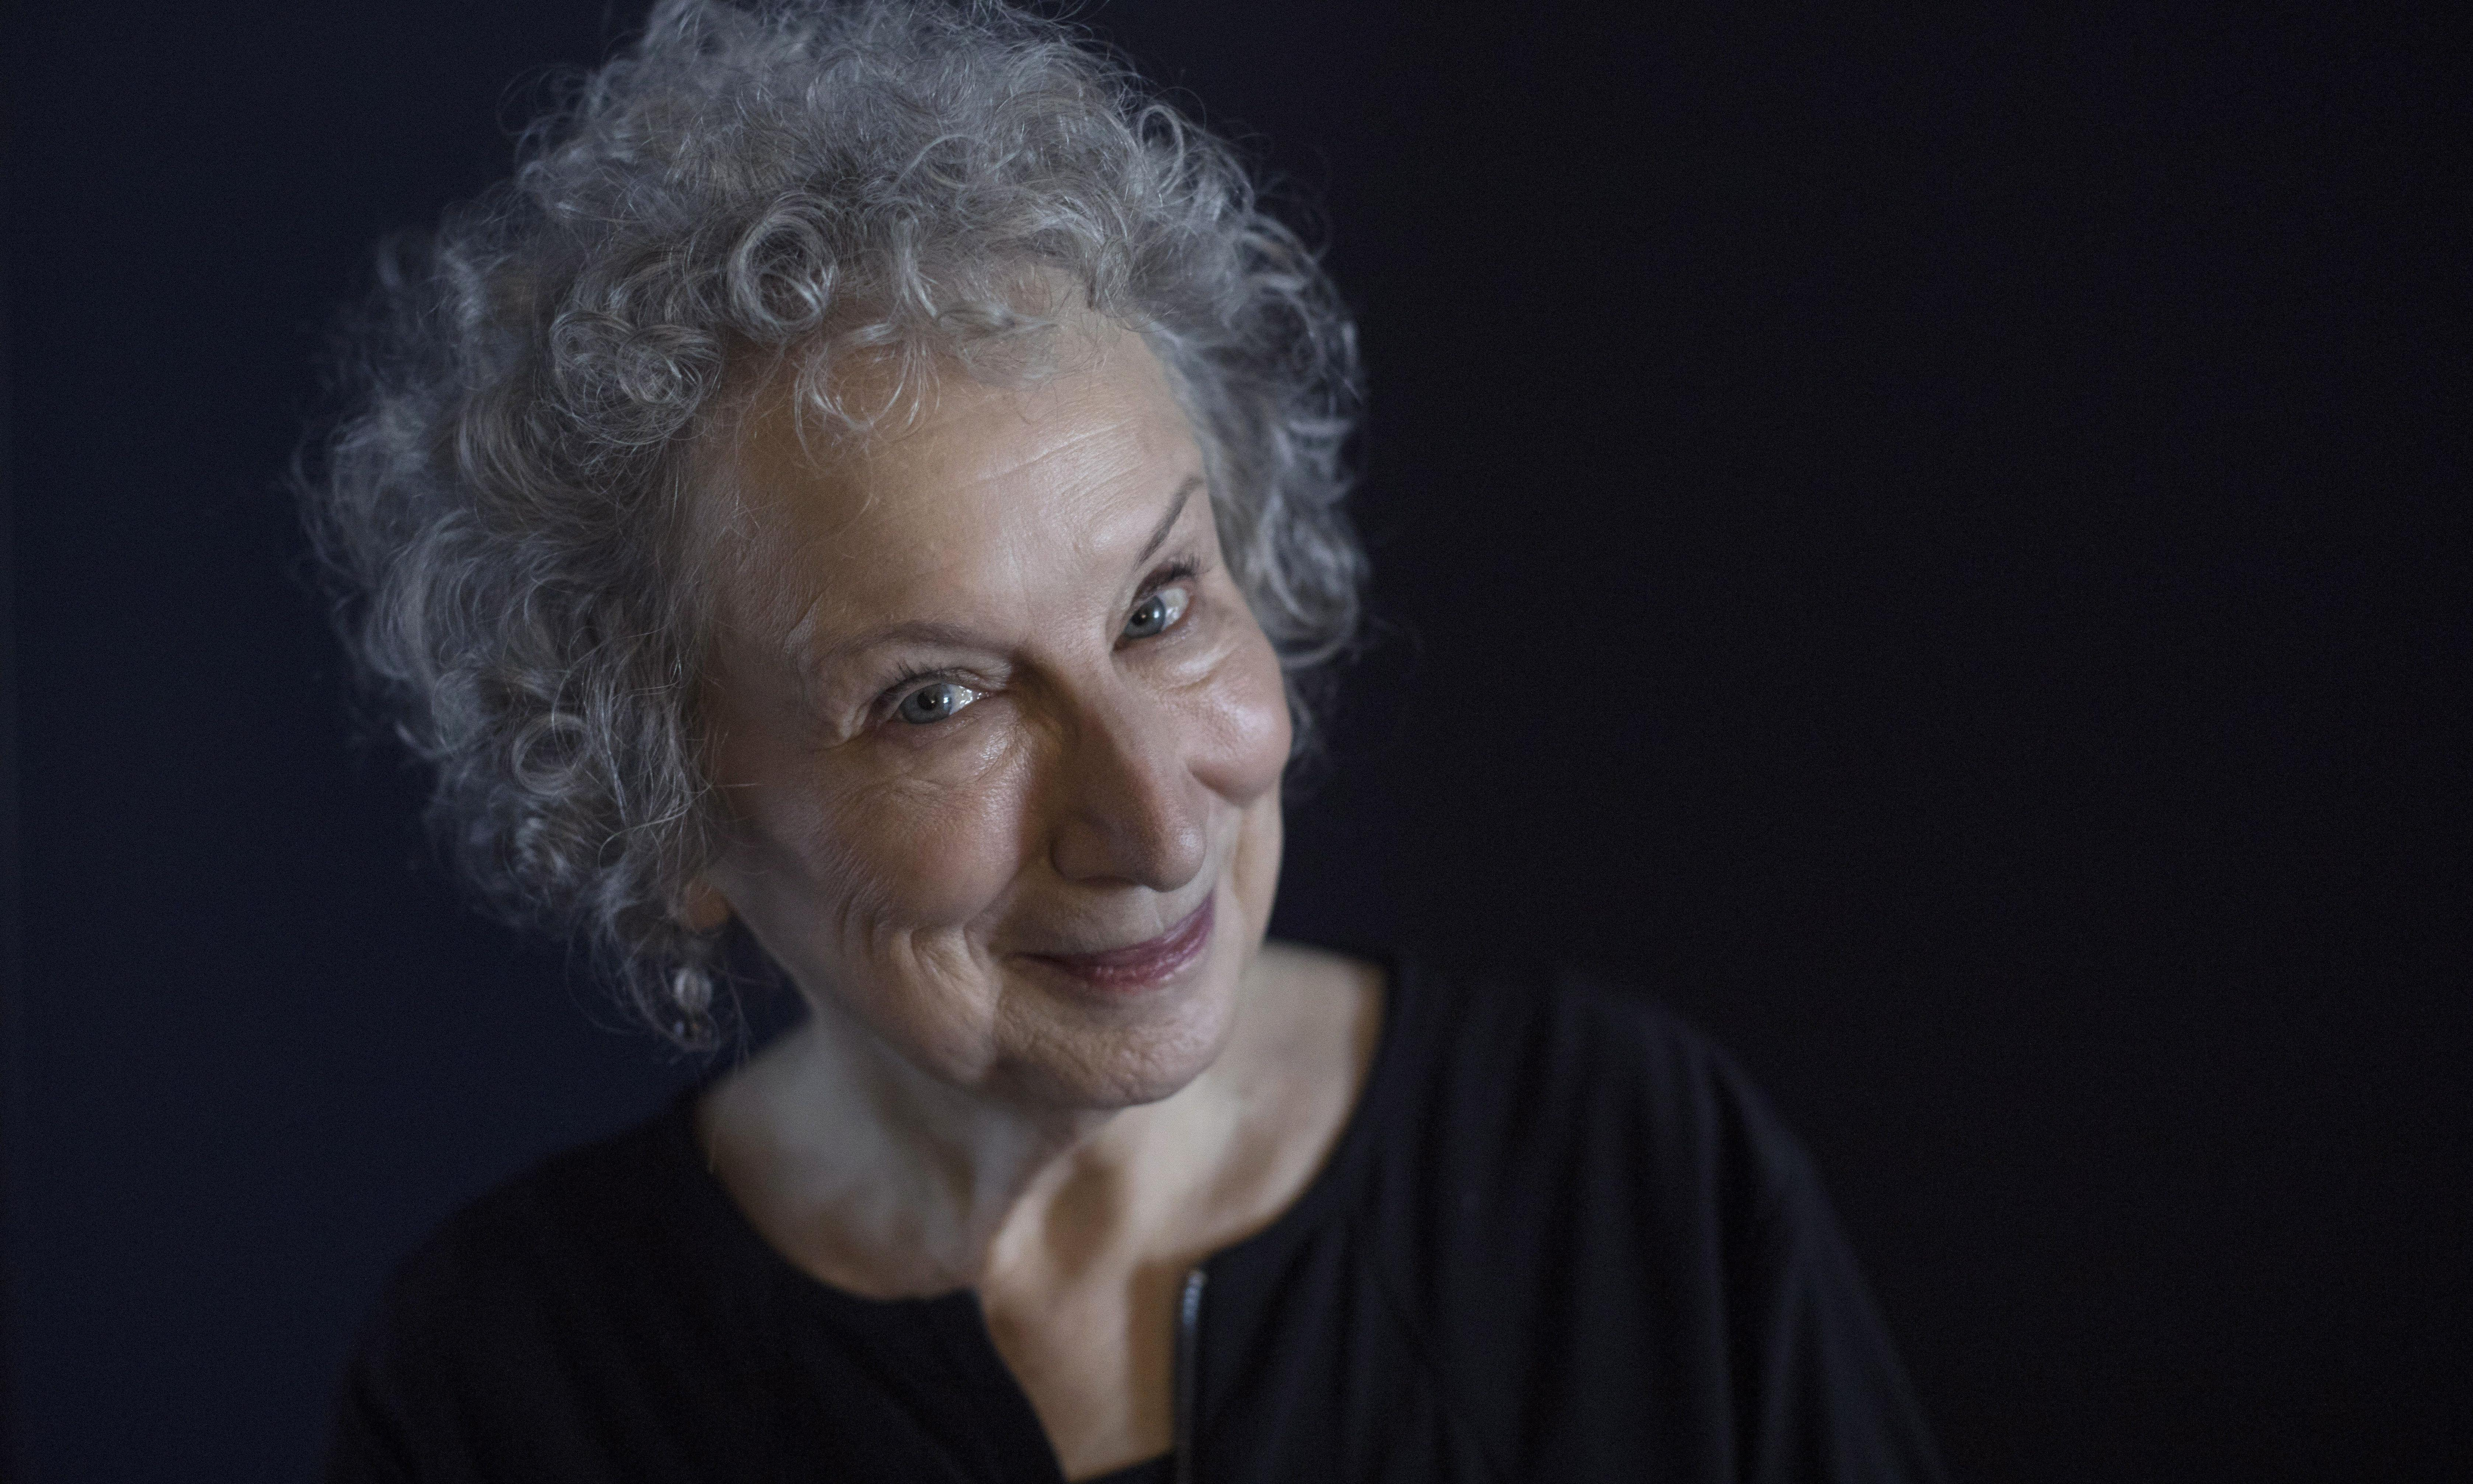 Booker prize: Margaret Atwood's The Handmaid's Tale sequel makes shortlist